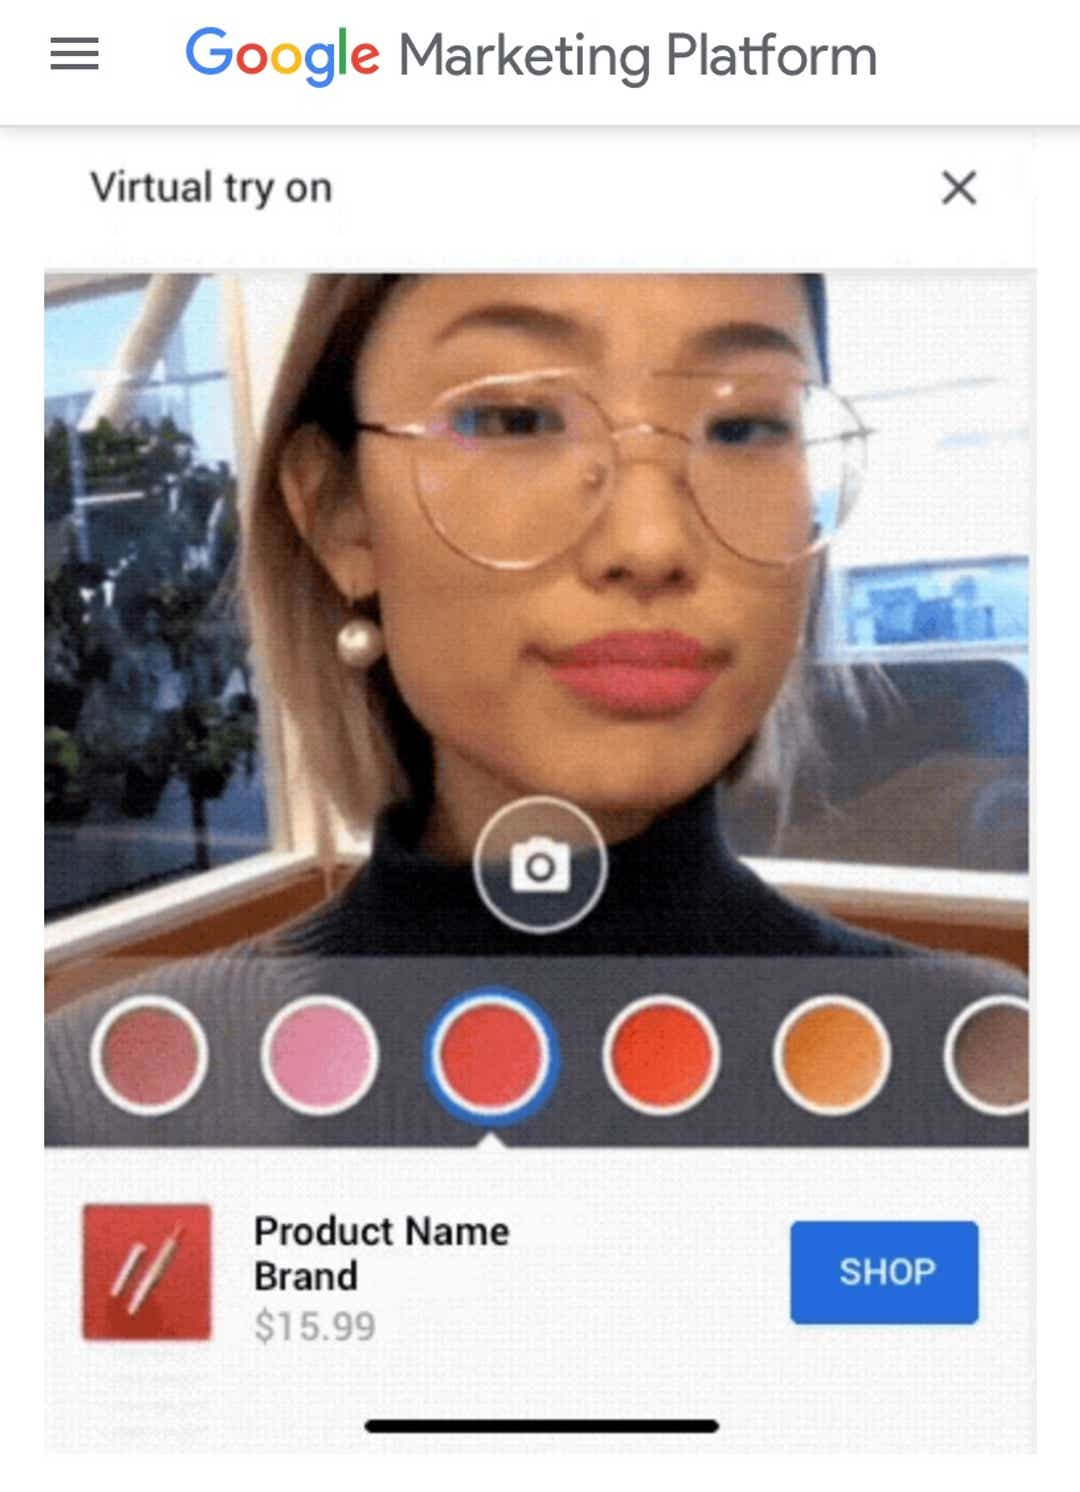 YouTube's new AR tool lets you try on makeup while watching tutorials